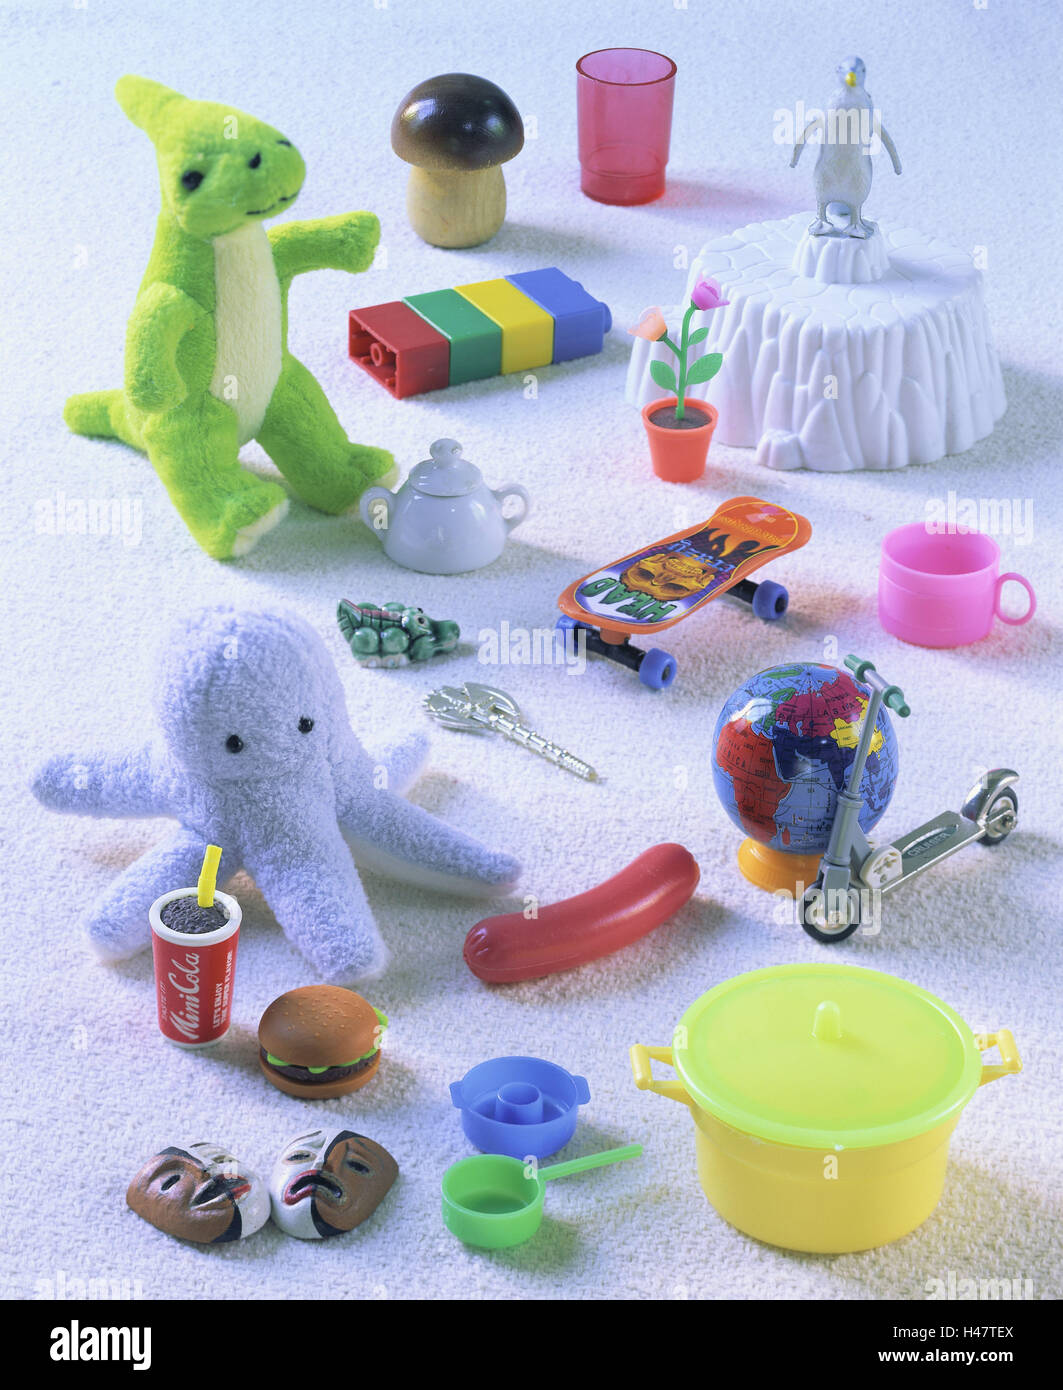 Toys, differently, game figures, figures, merged, miniatures, choice, small, game animals, game figures, objects, - Stock Image